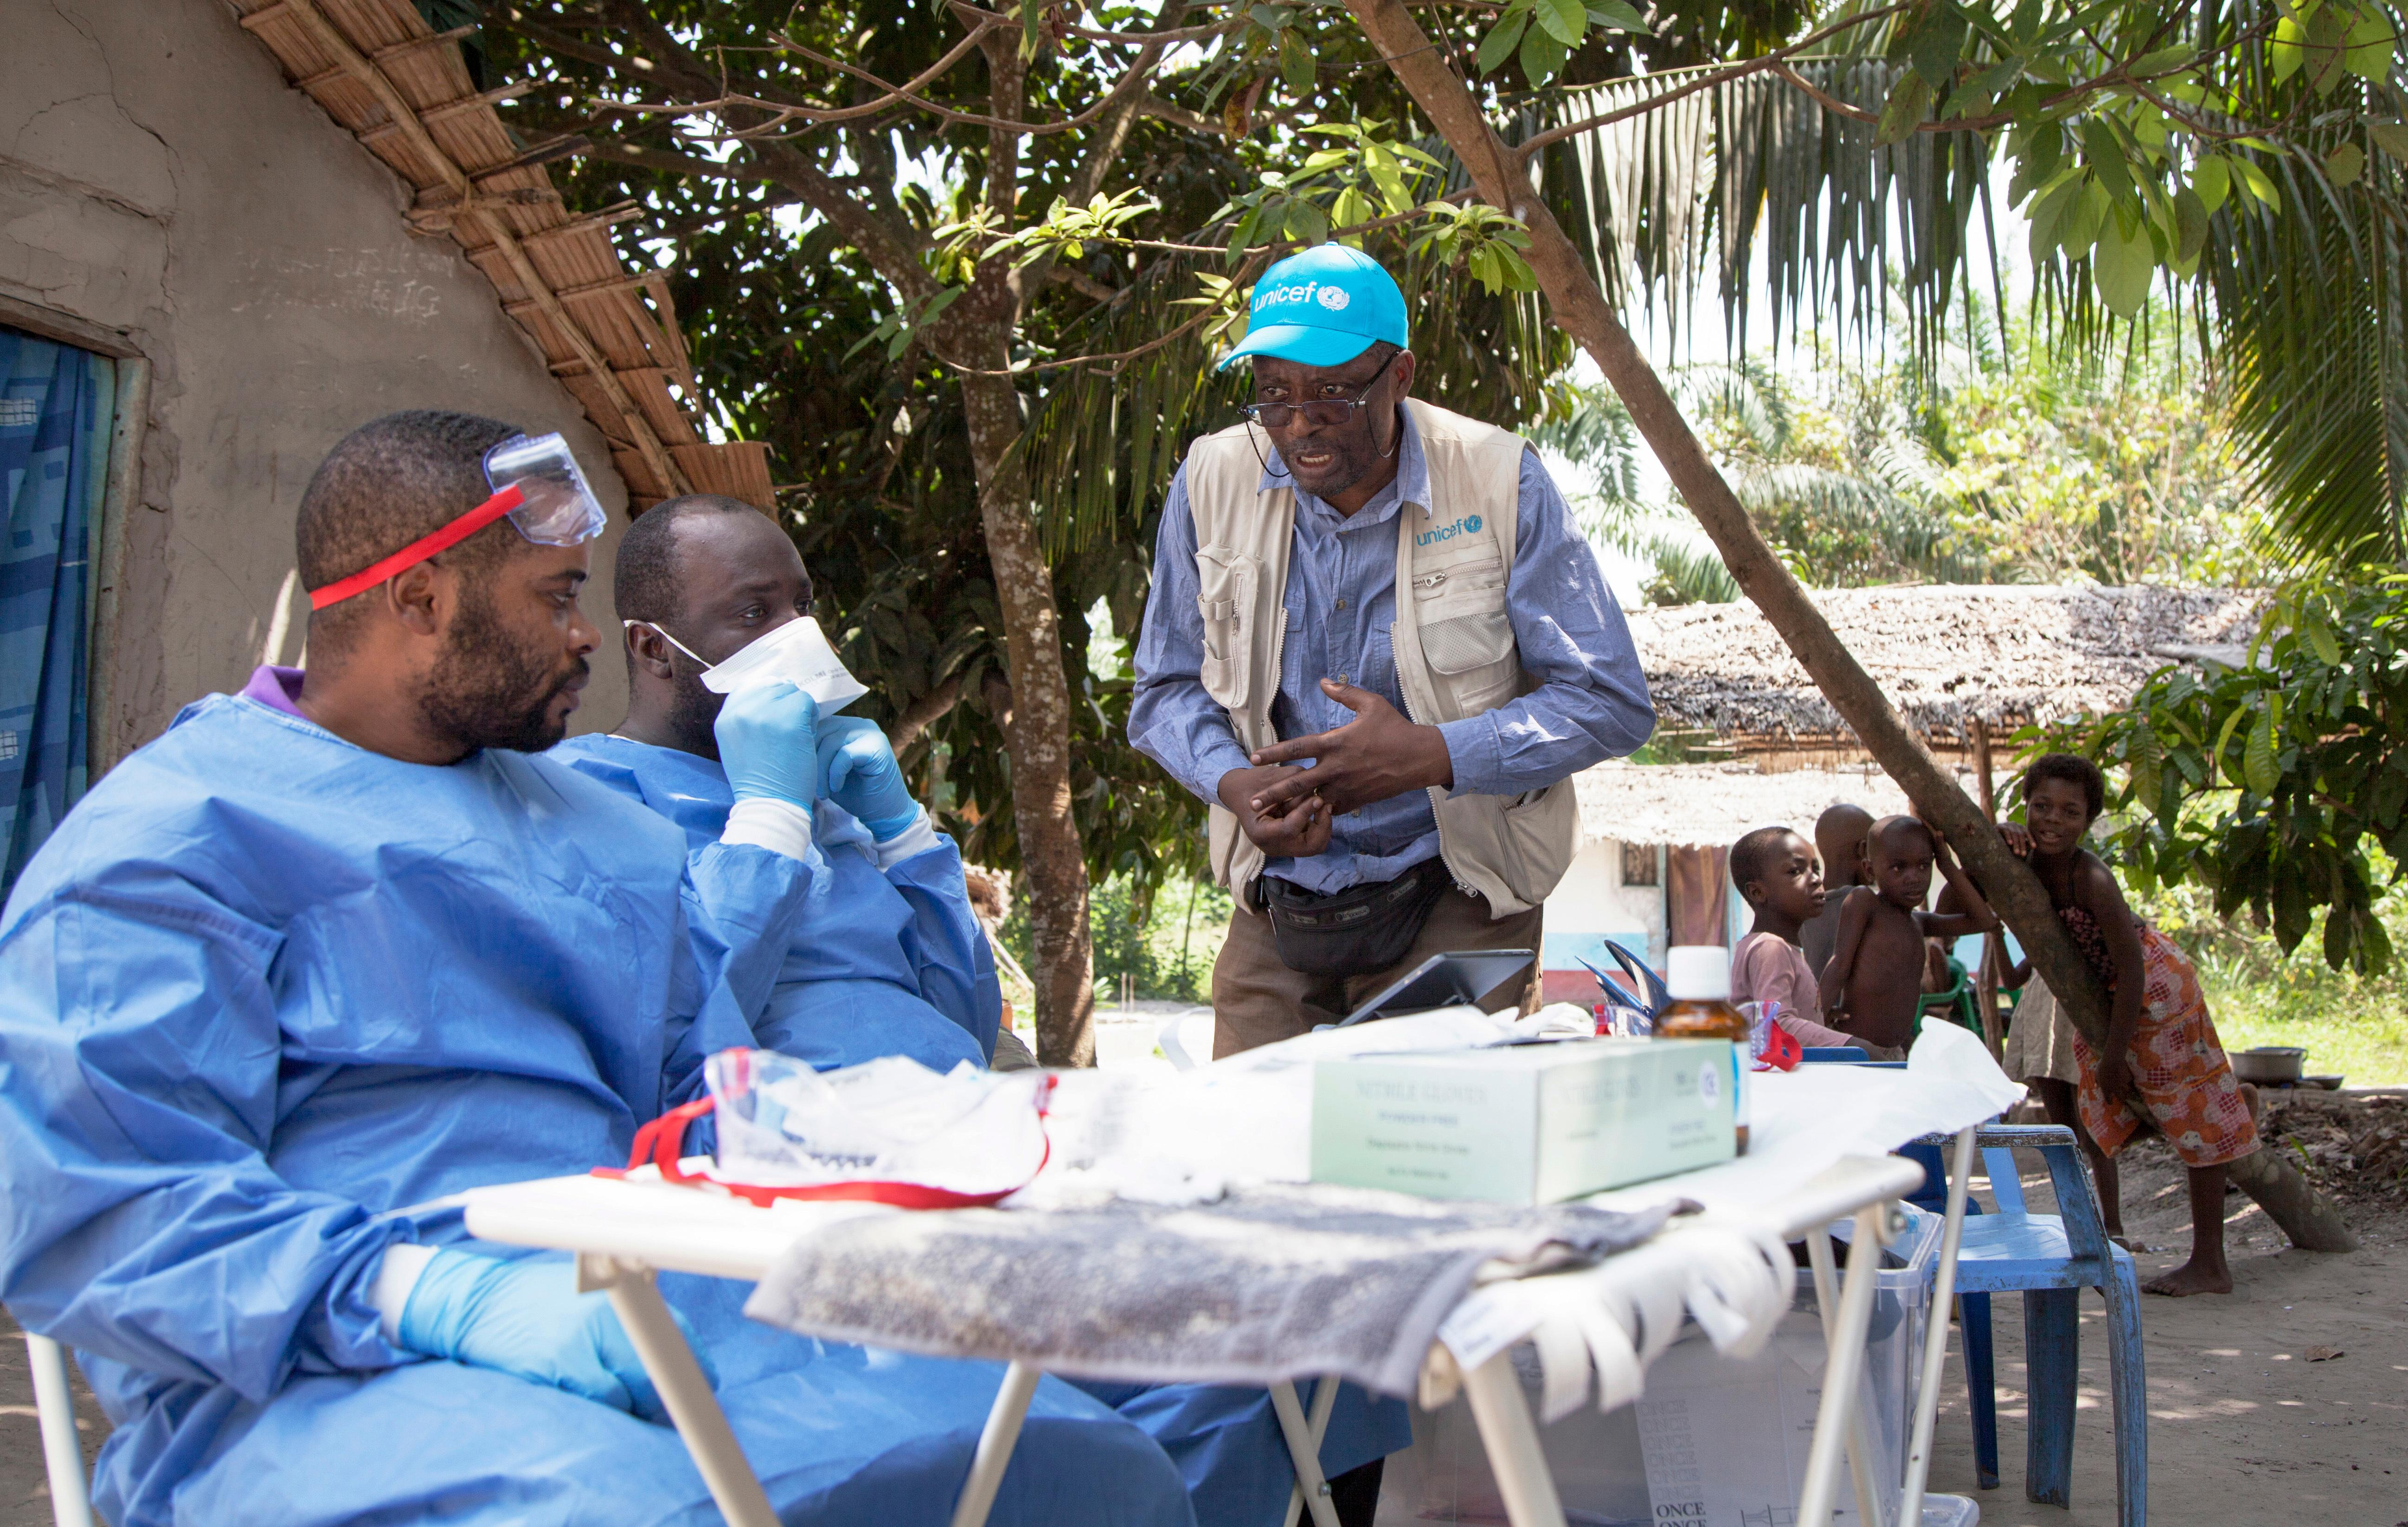 In this photo taken Friday, May 25, 2018, UNICEF staffer Jean Claude Nzengu, center, talks with members of an Ebola vaccination team as they prepare to administer the vaccine in an Ebola-affected community in the north-western city of Mbandaka, in Congo. An Ebola vaccination campaign is under way in Mbandaka, the city of 1.2 million on the Congo River where four Ebola cases have been confirmed. (Mark Naftalin/UNICEF via AP)